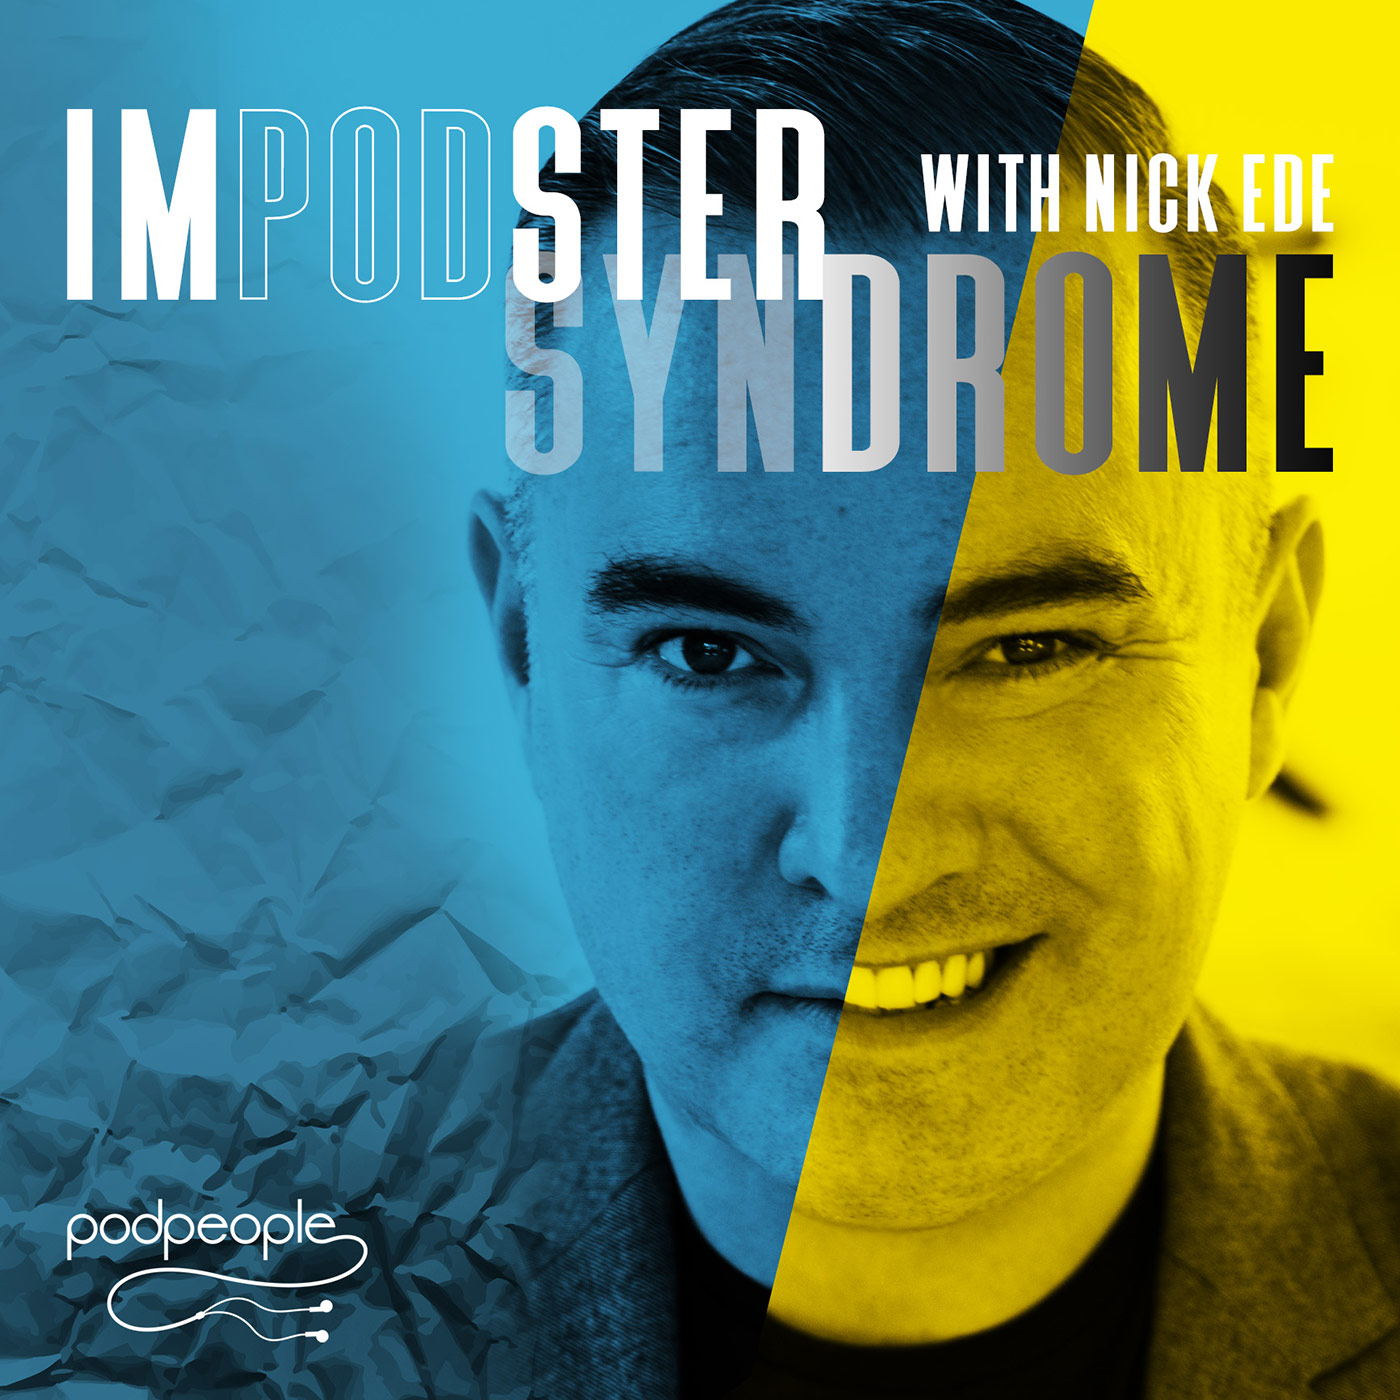 Impodster Syndrome